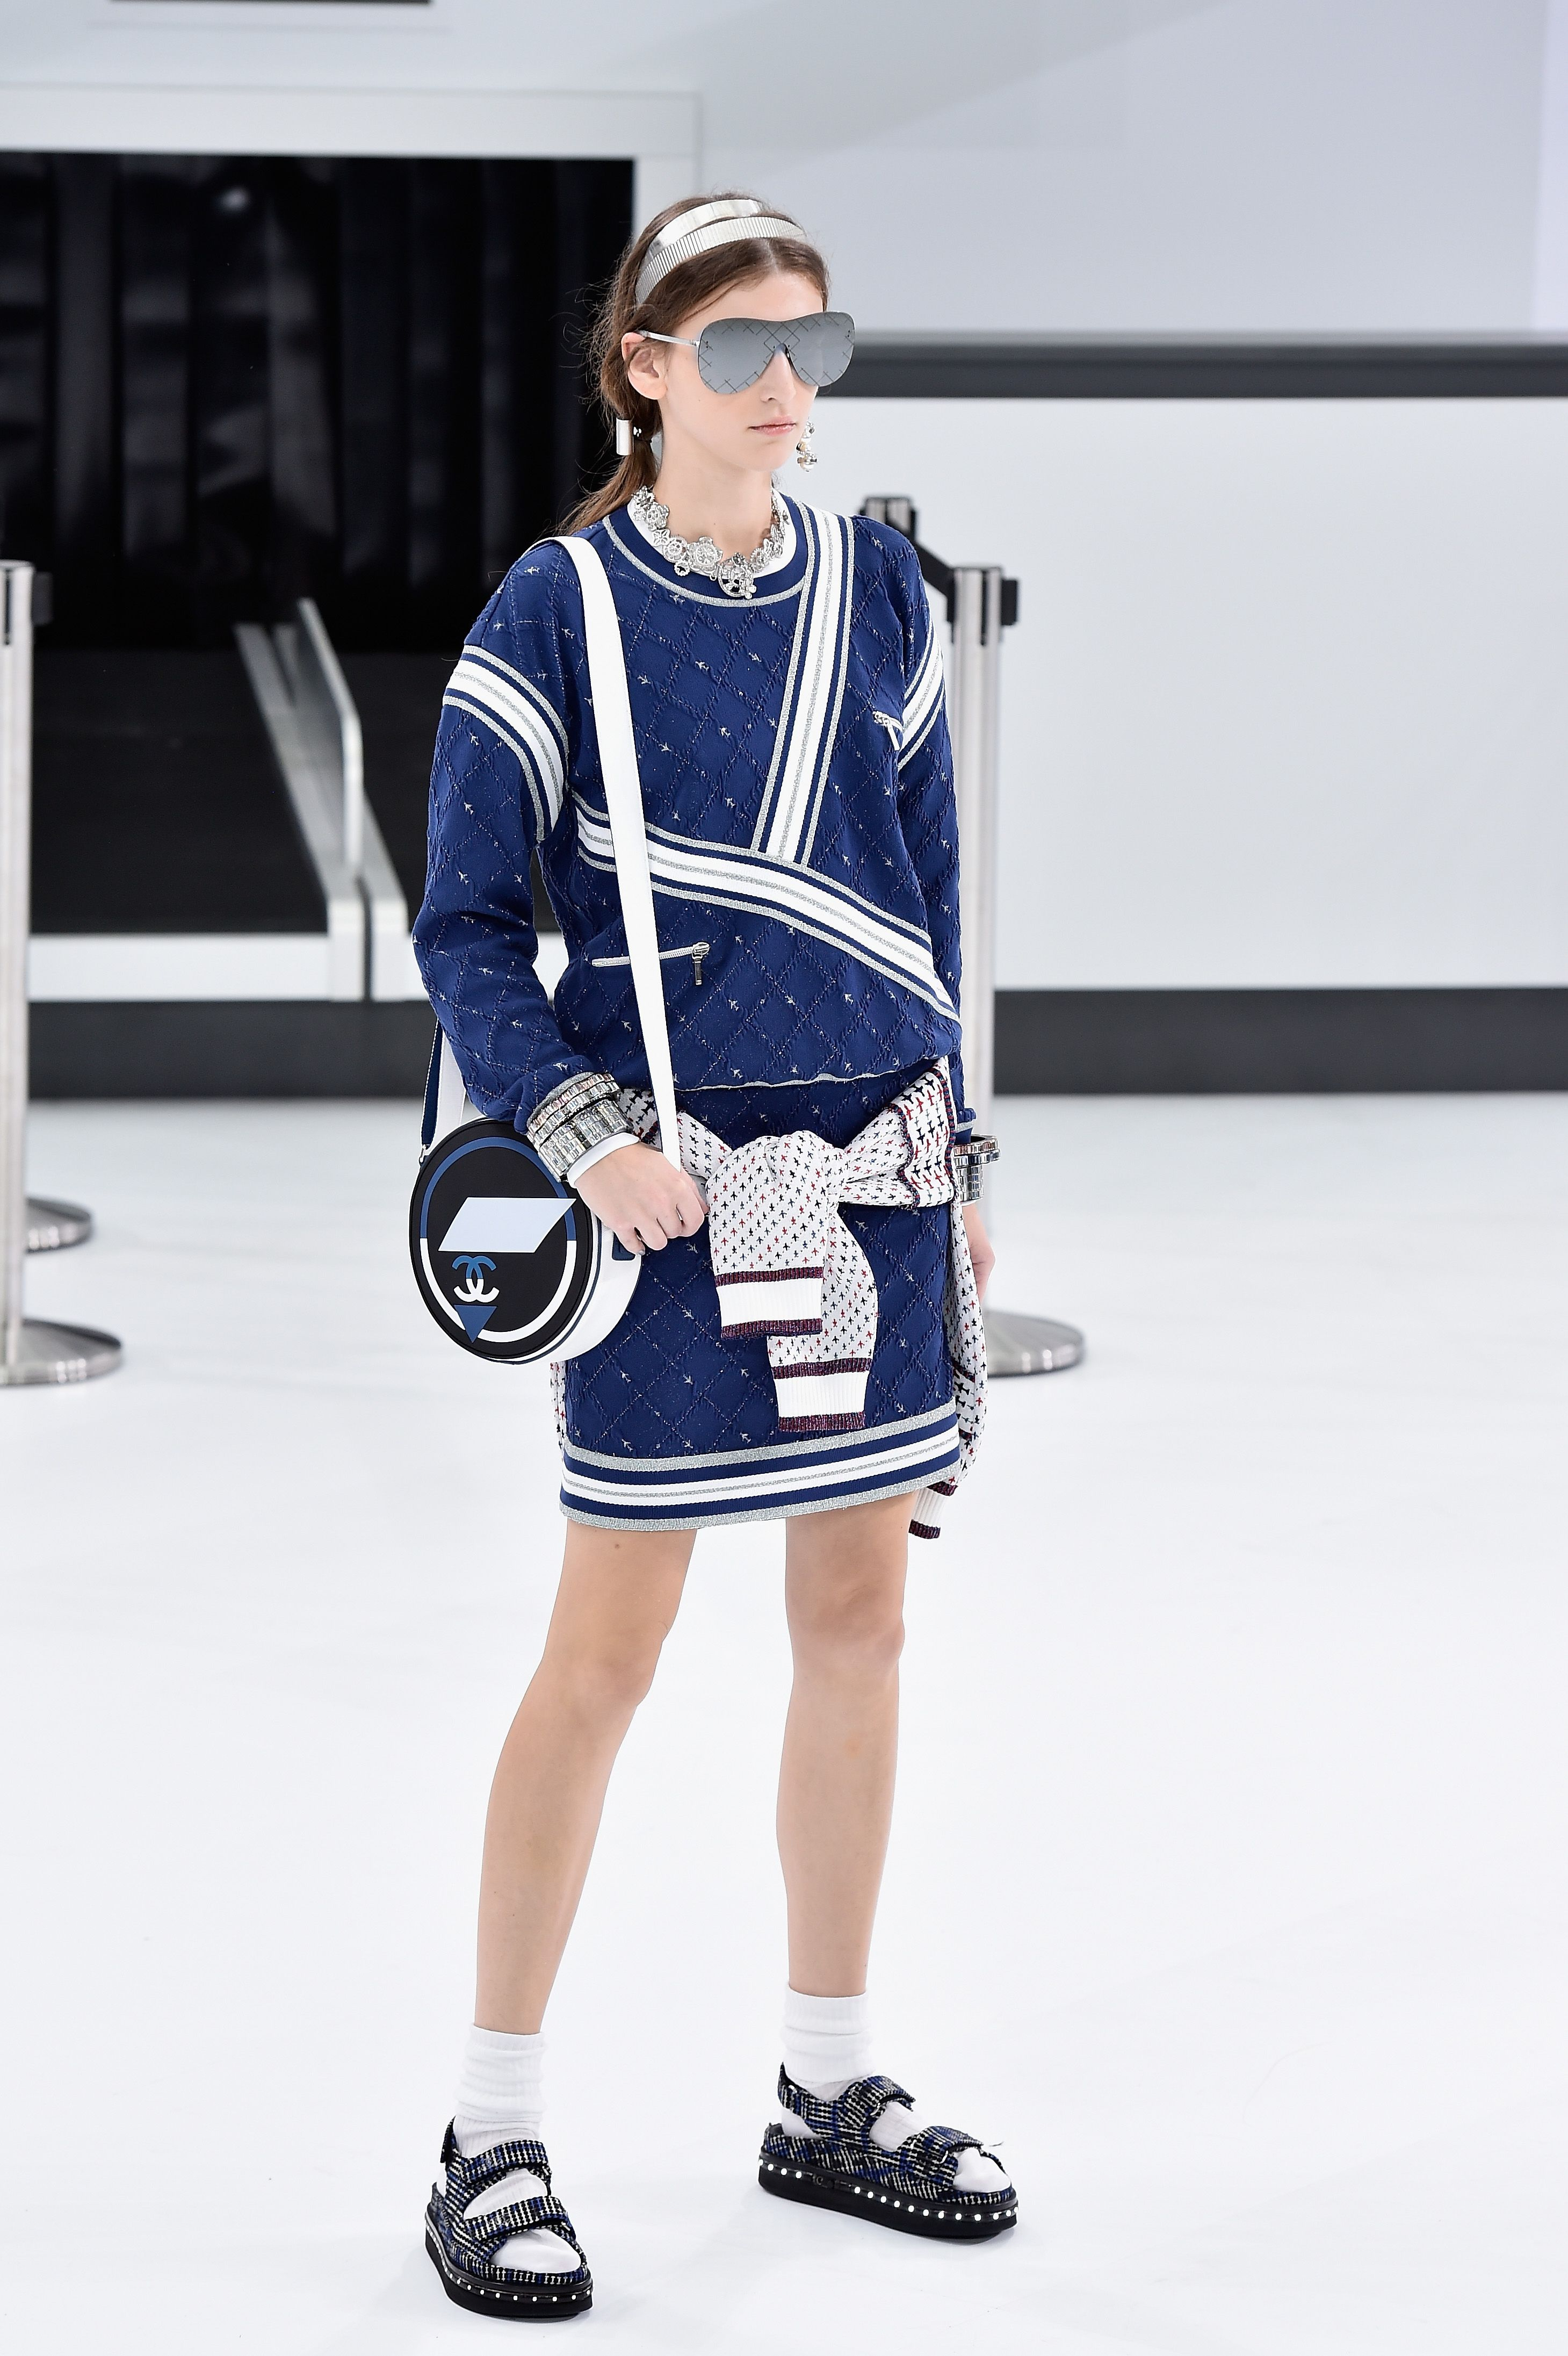 fd4472d8d3c 17 Bags You Have to See From The Chanel Spring 2016 Runway Show - ELLE.com